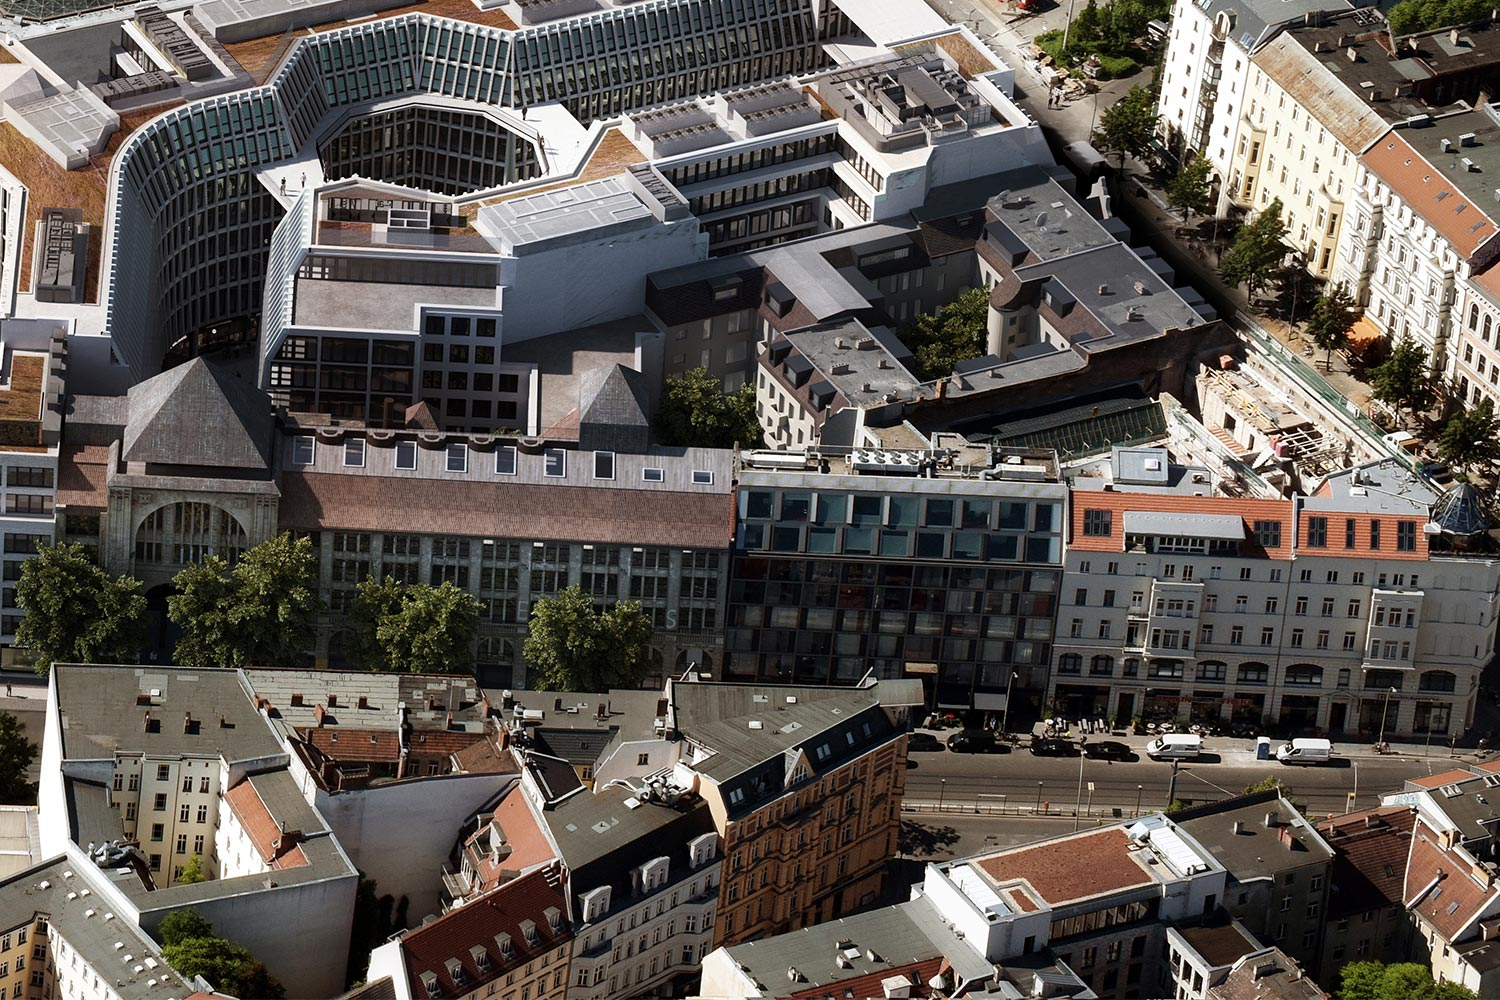 Aerial view of the AM TACHELES mixed-use development in Berlin